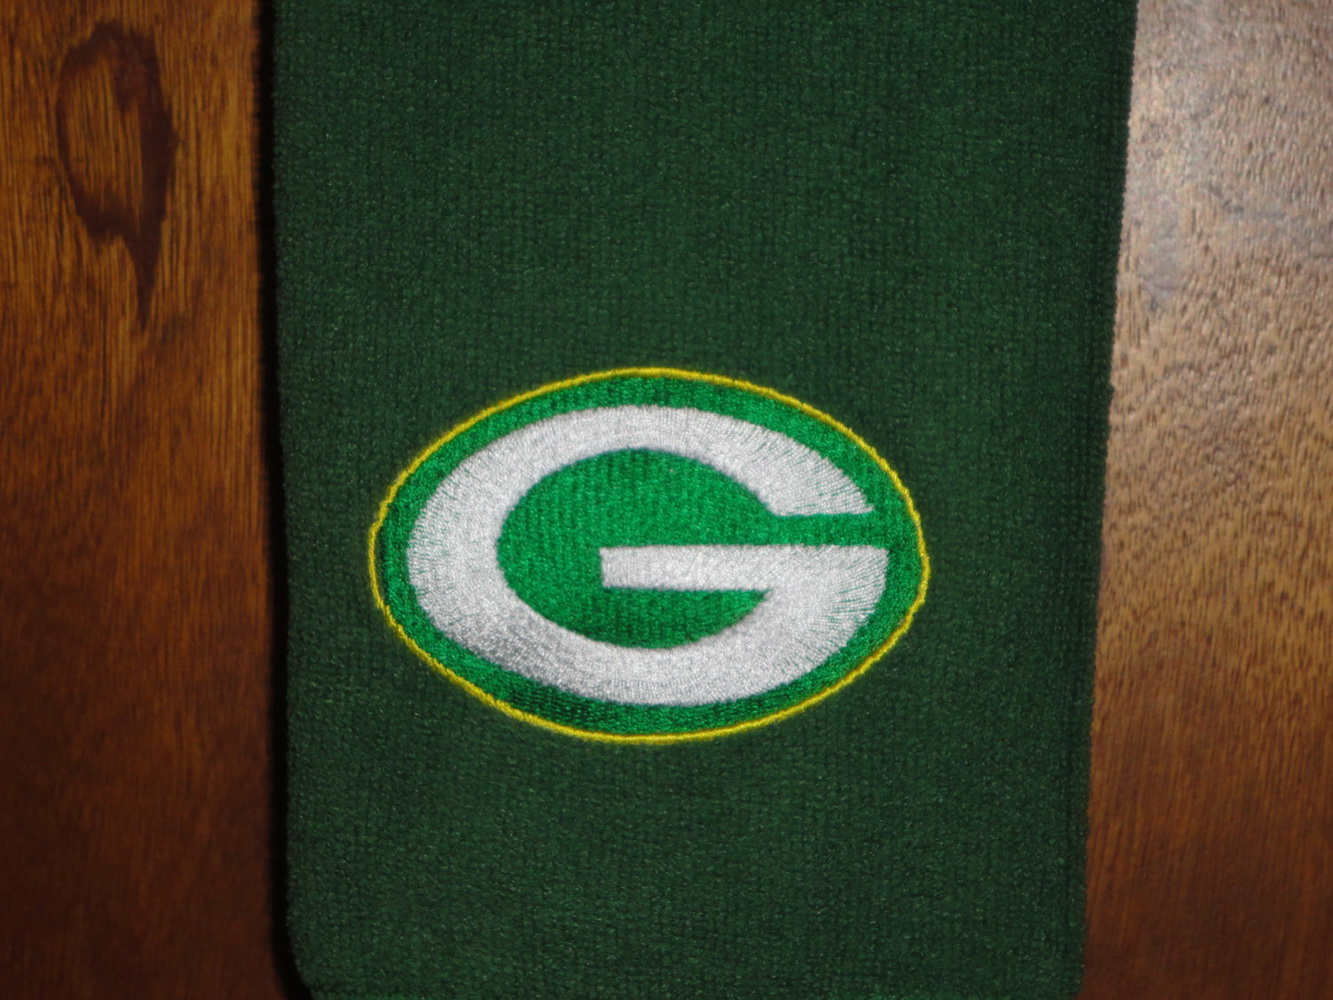 Green Bay Packers Logo embroidered on scarf